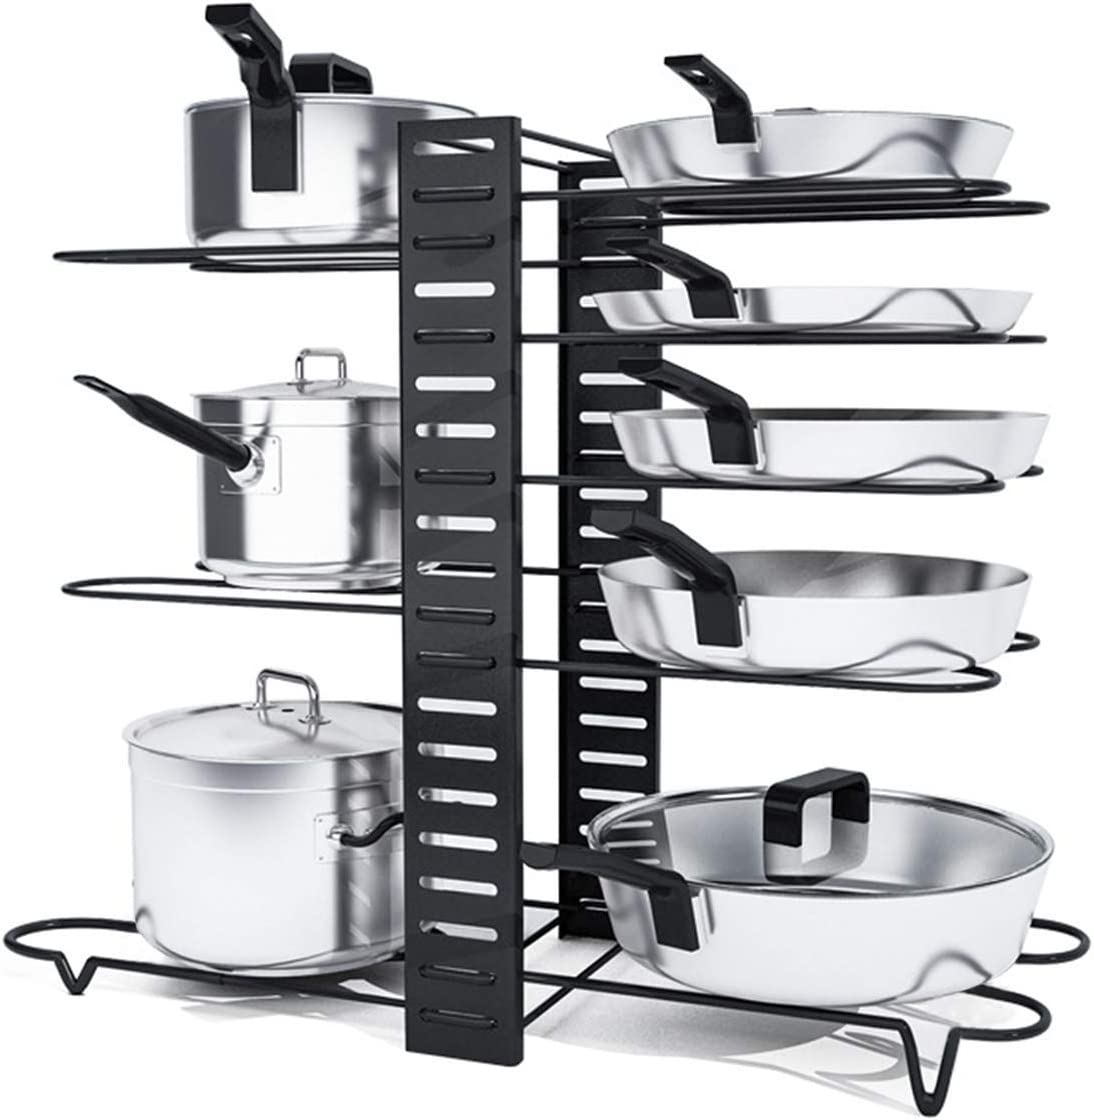 Pot Rack Organizer, Astory 8 Tiers Pan Rack Holder Stand Detachable Pot Lid Rack Length Adjustable Shelf Cookware Holders Cabinet Pantry With 3 DIY Methods for Kitchen Counter and Cabinet,Black